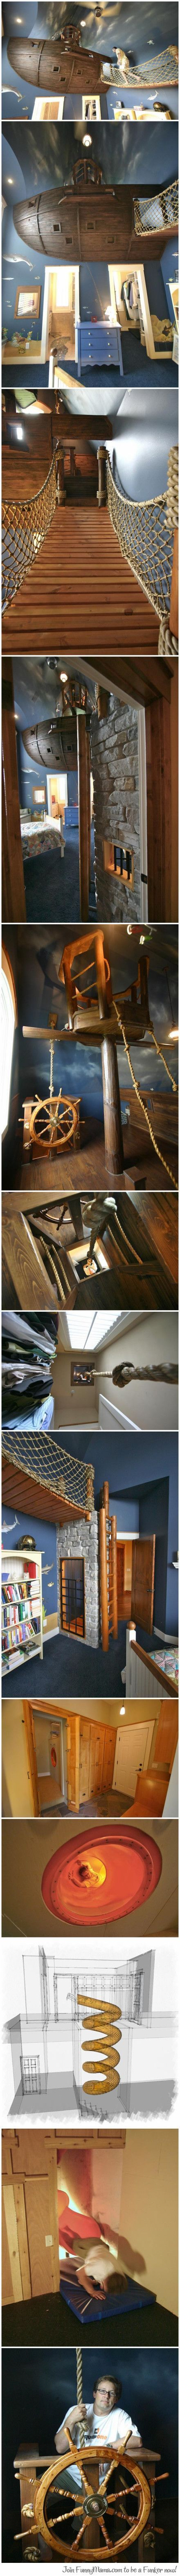 A room designed by a father for his 6 year old son...THAT IS SO COOL!